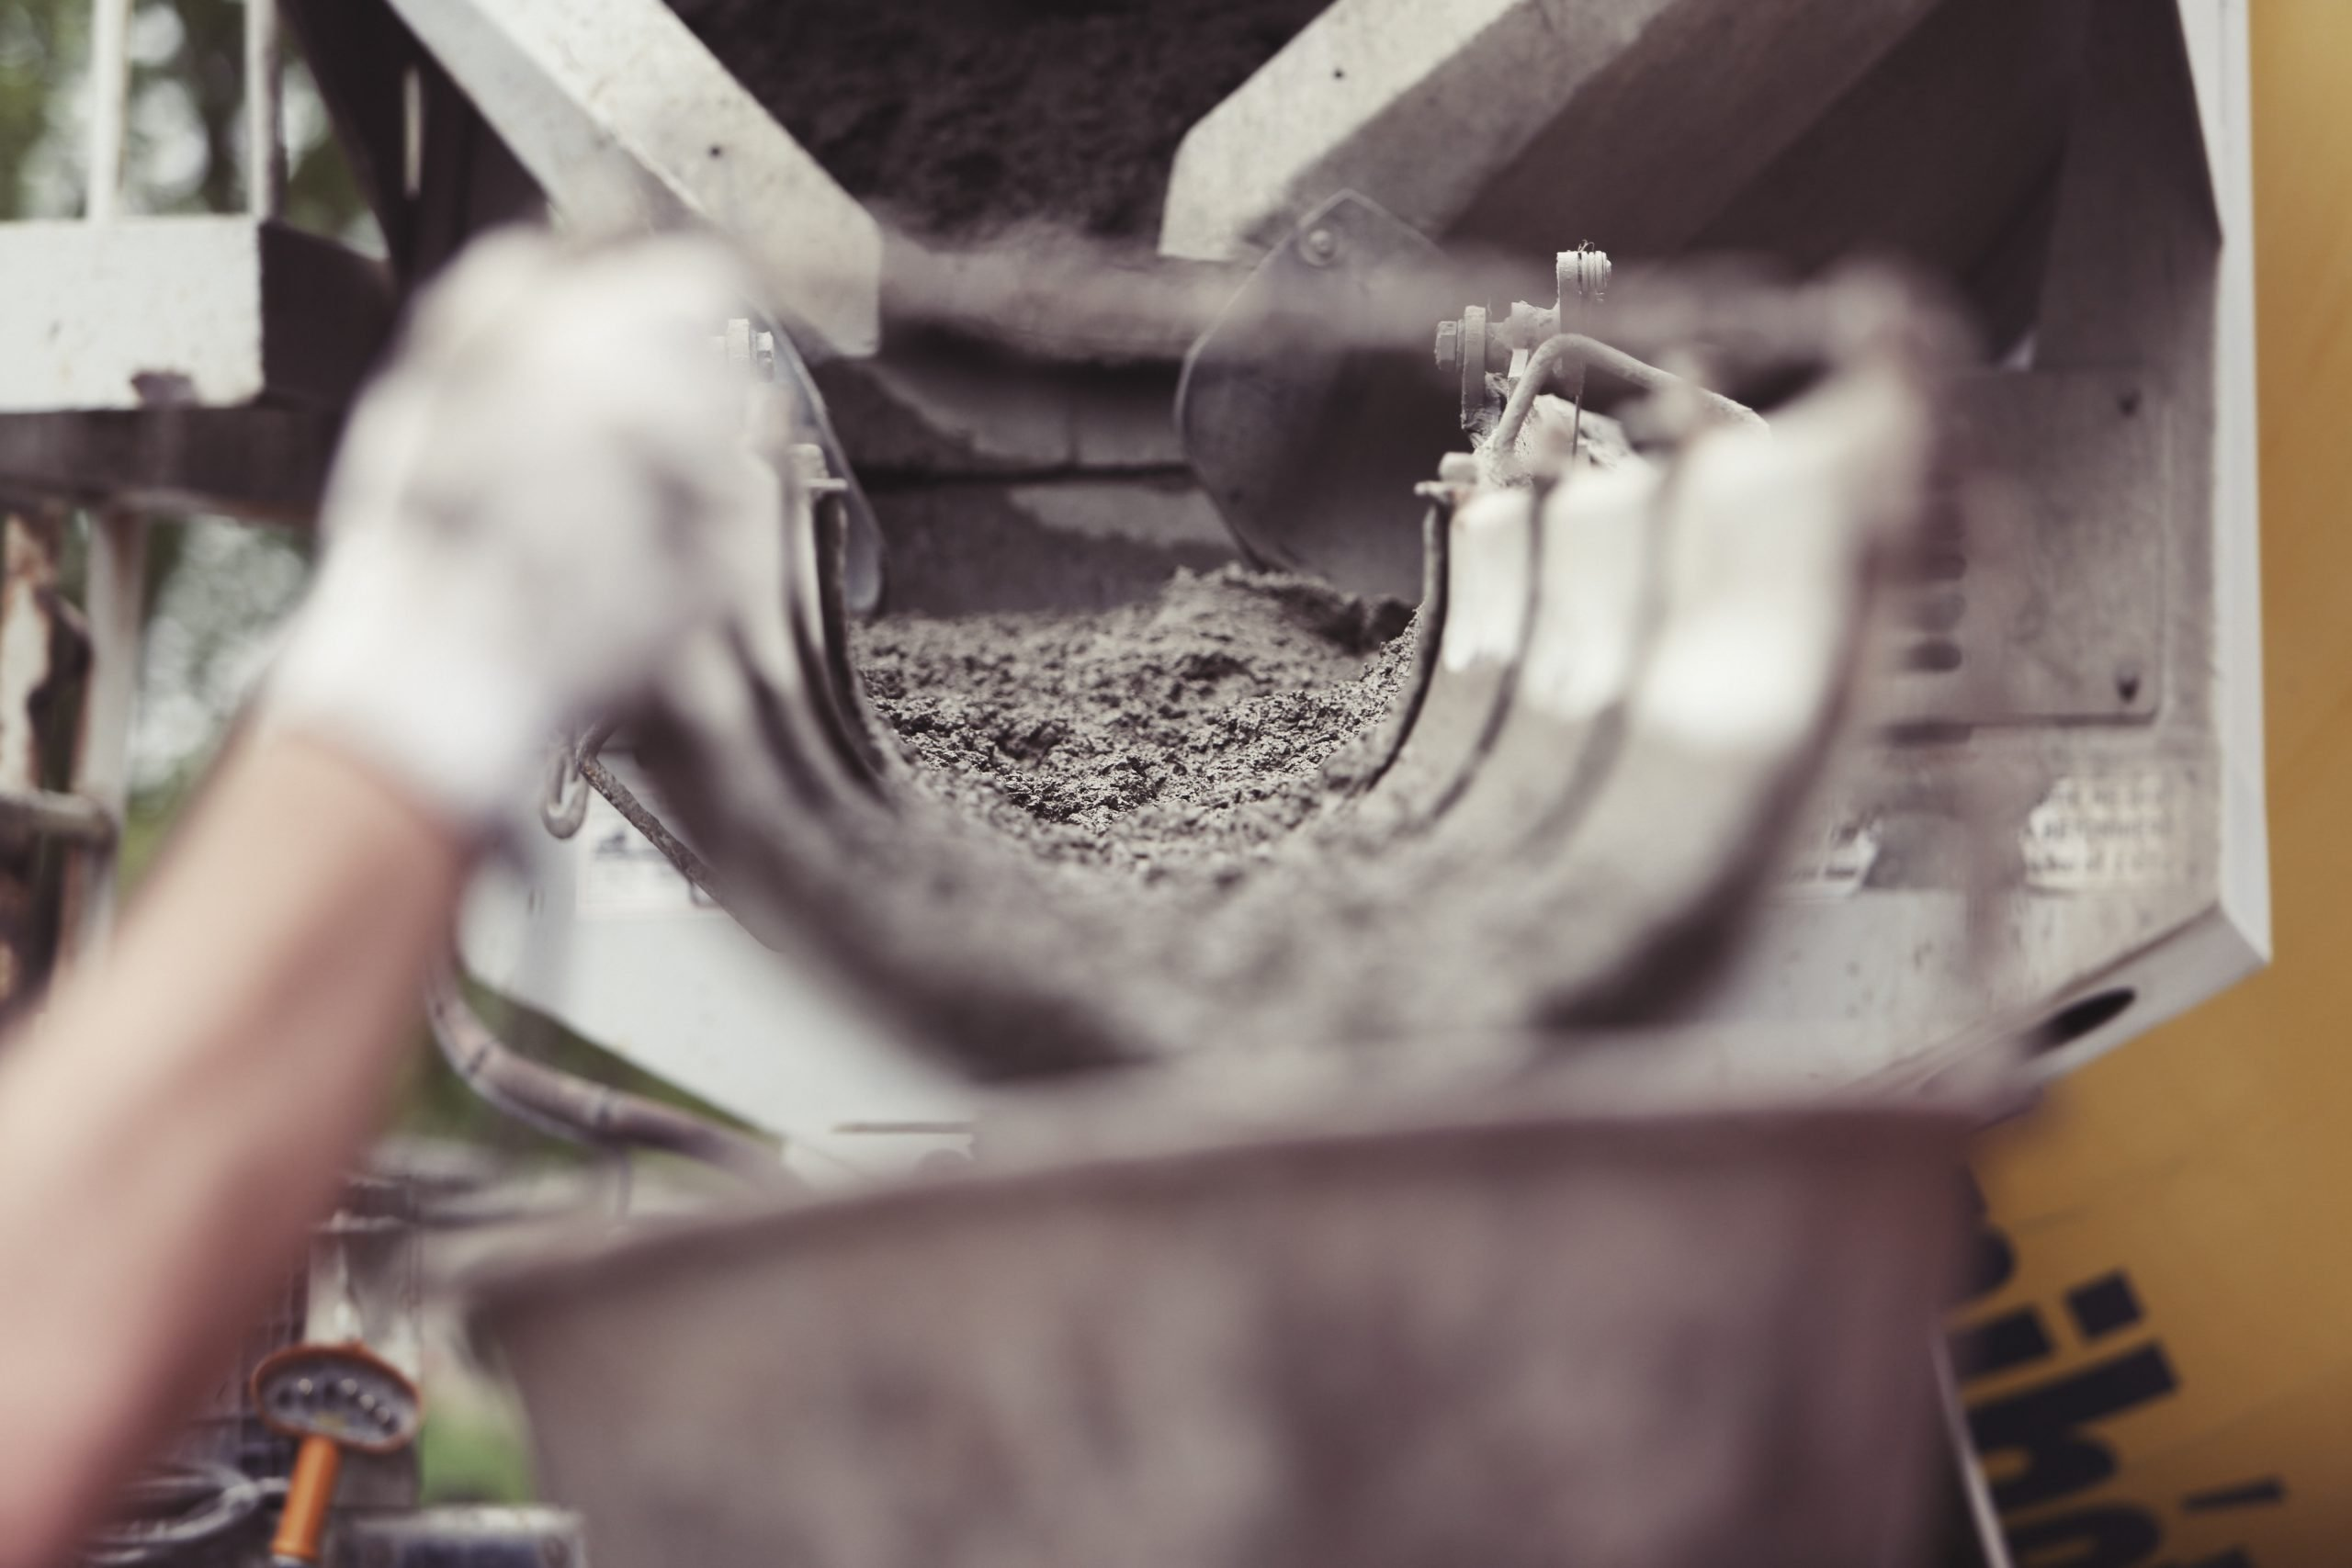 Cement flowing out of a concrete truck at a construction site, showing the start of the concrete lifecycle.